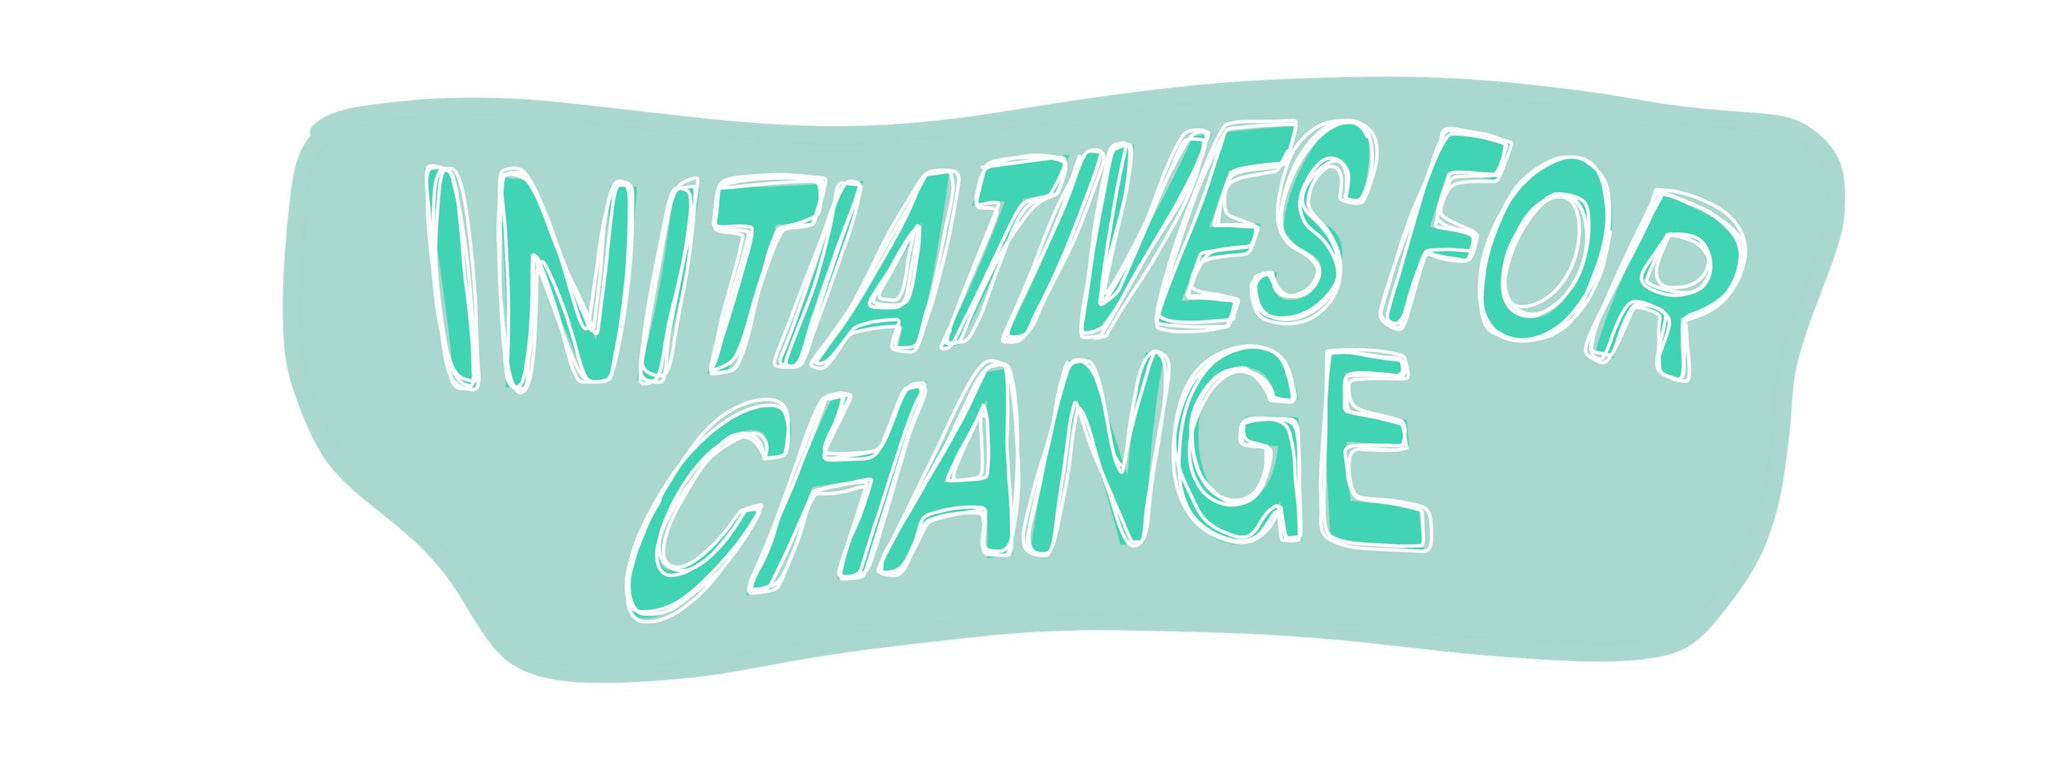 Initiatives For Change OutsideIn